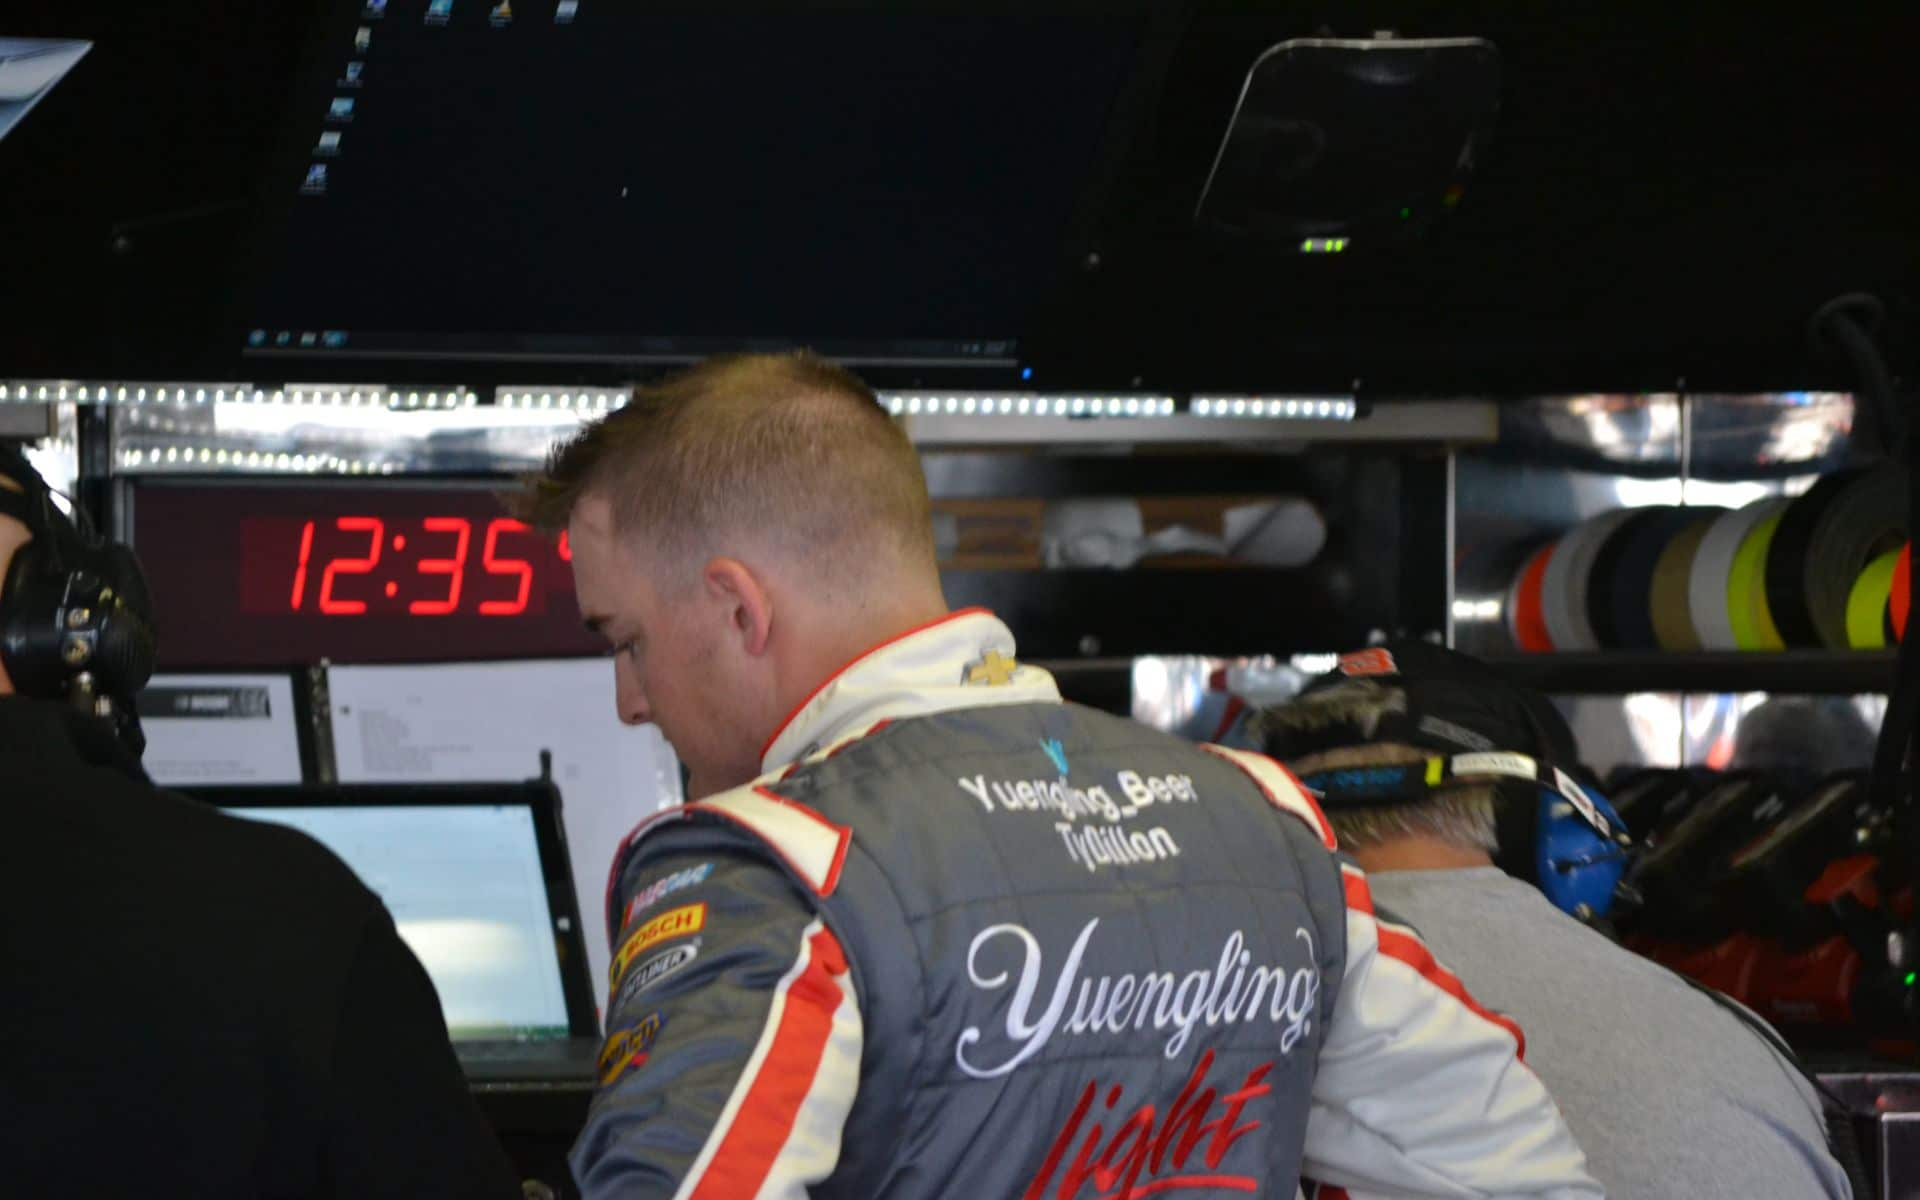 2015 Pocono NSCS Ty Dillon in Garage with Yuengling Driver Suite Credit Anthony Lumbis Sr.